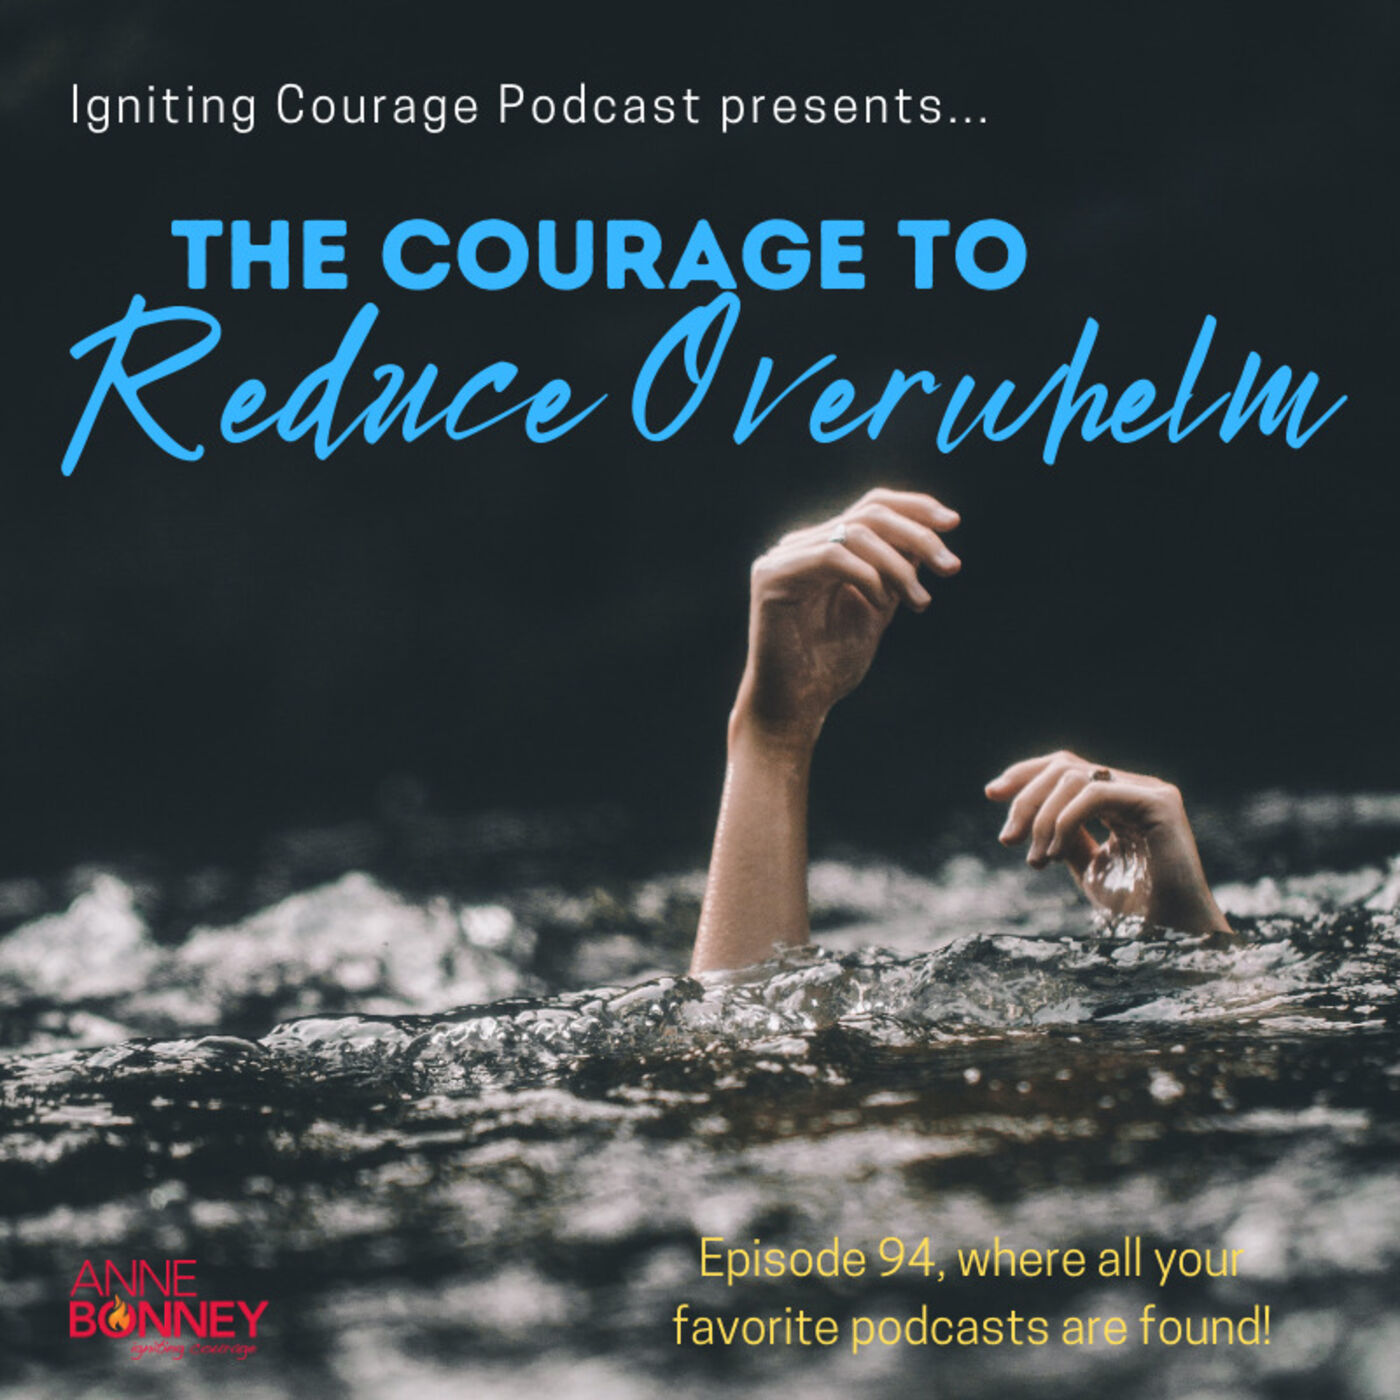 IGNITING COURAGE Podcast Episode 94: The Courage to Reduce Overwhelm